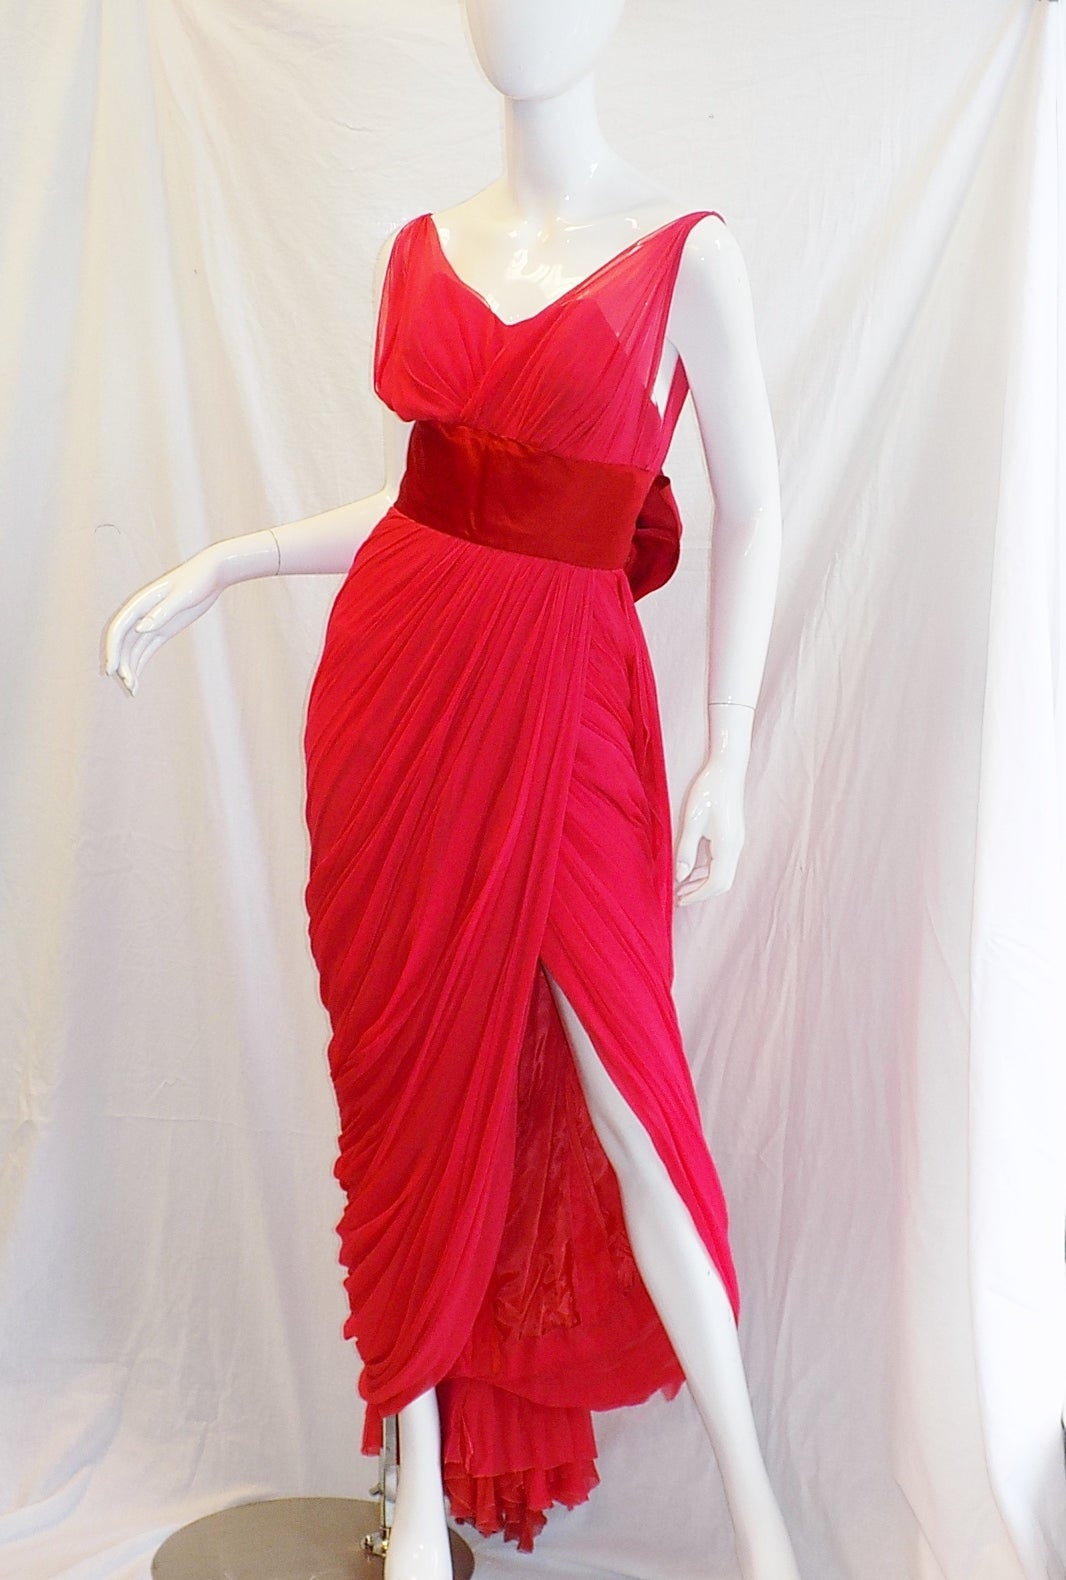 Women's Iconic Jean Dessès Red draped gown with Fox fur stole 1950's For Sale